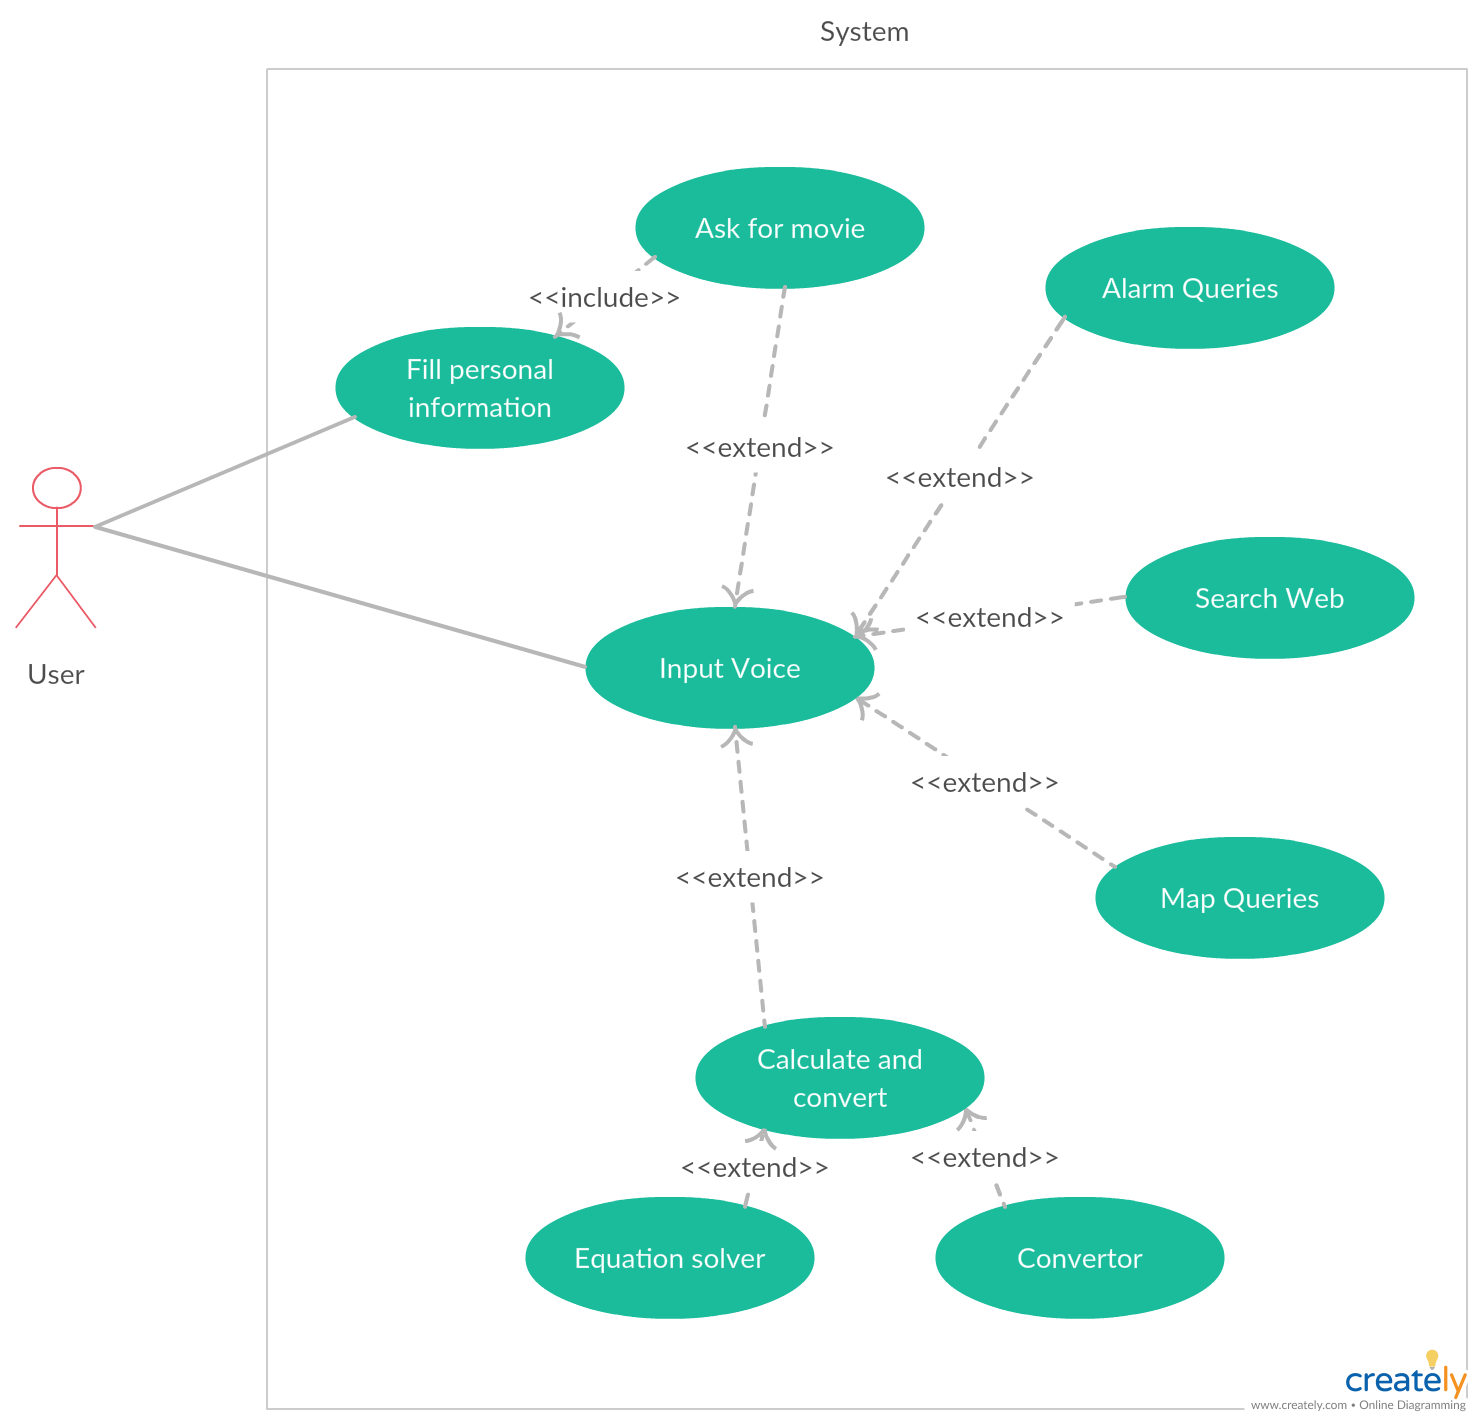 Use Case Diagram Of Virtual Assistant Explore The Diagram And Discover The Virtual Assis Machine Learning Artificial Intelligence Computer Generation Use Case